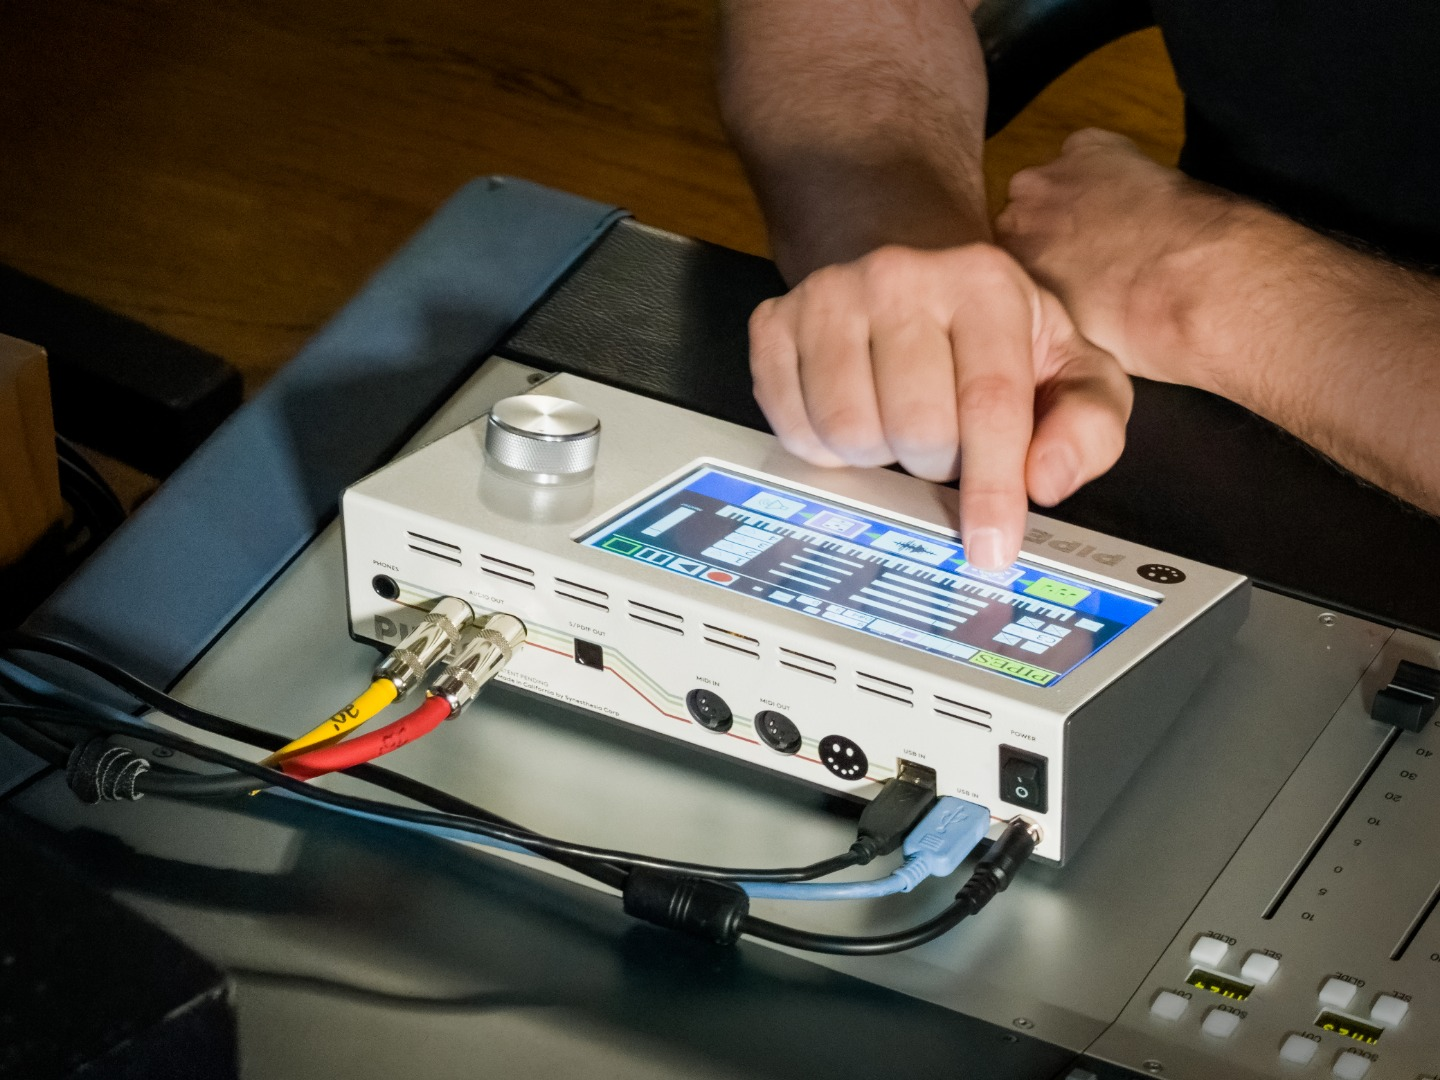 Pipes brings music production hardware and software together